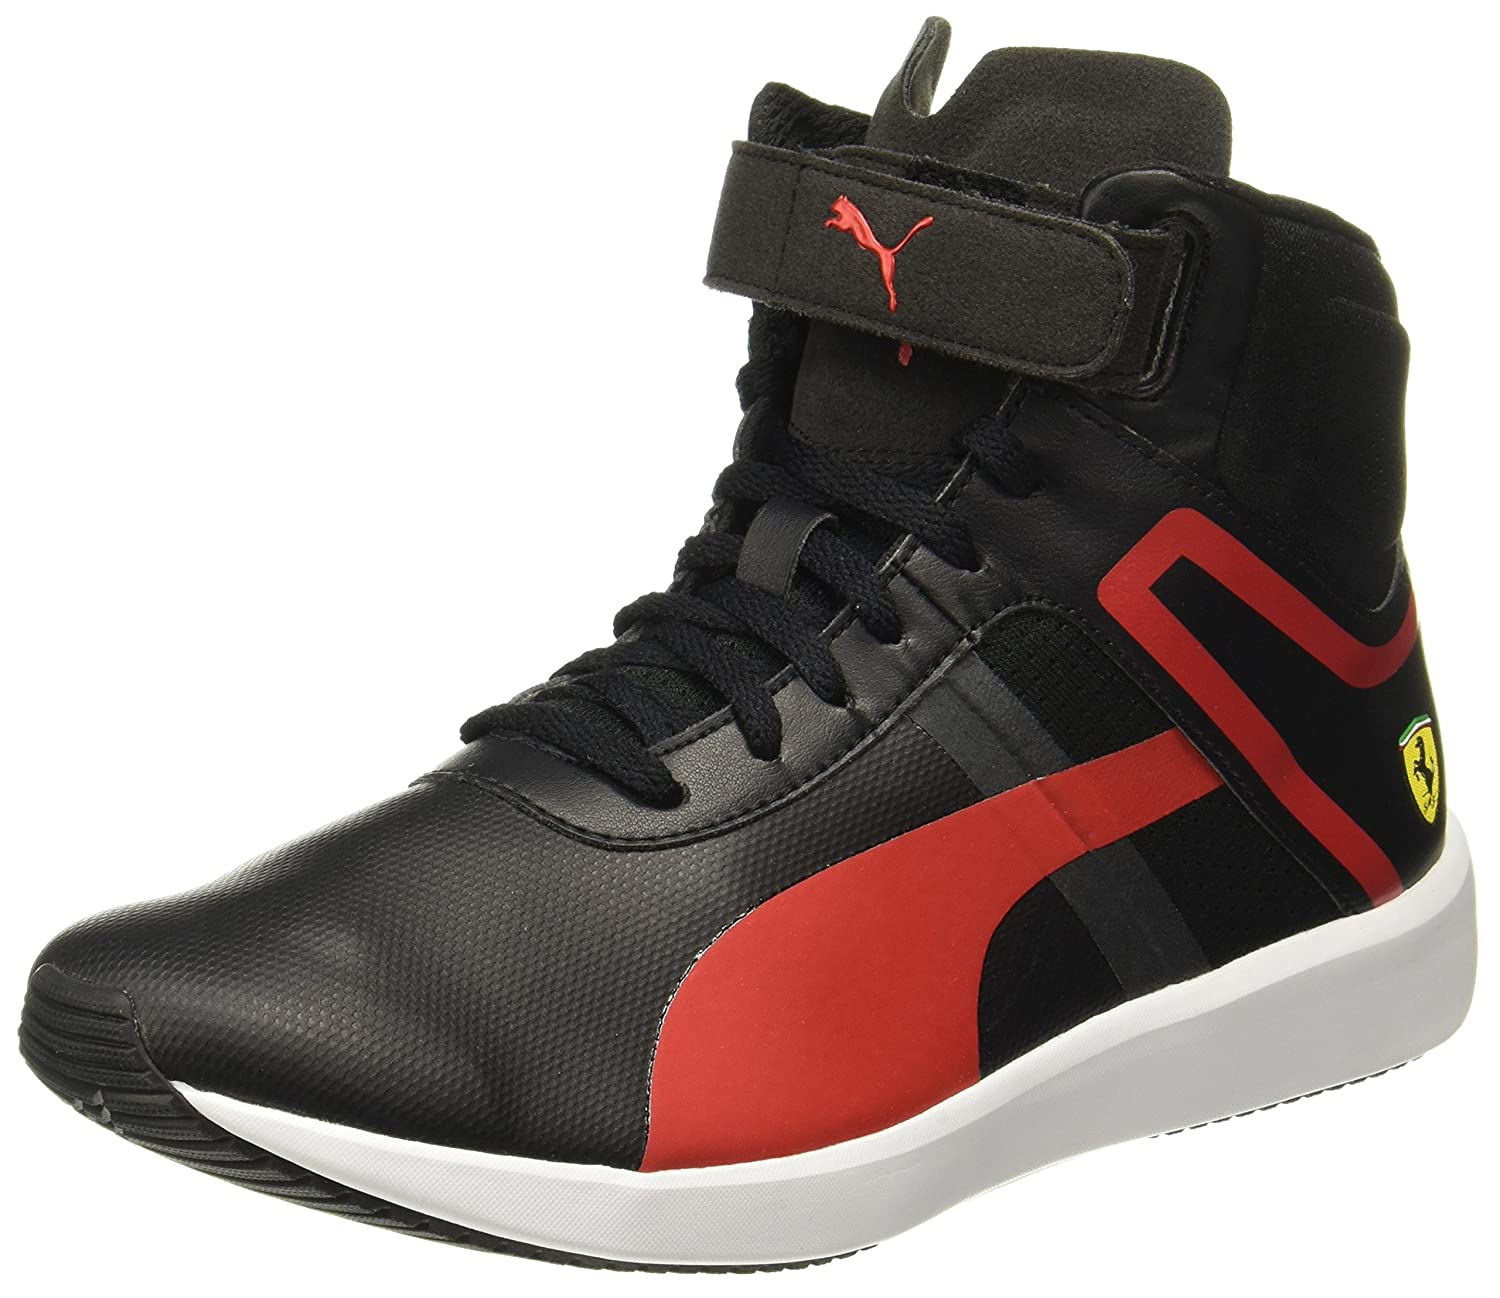 b916a3ac6543ac Puma Men s Sf F116 Boot Sneakers  Buy Online at Low Prices in India -  Amazon.in